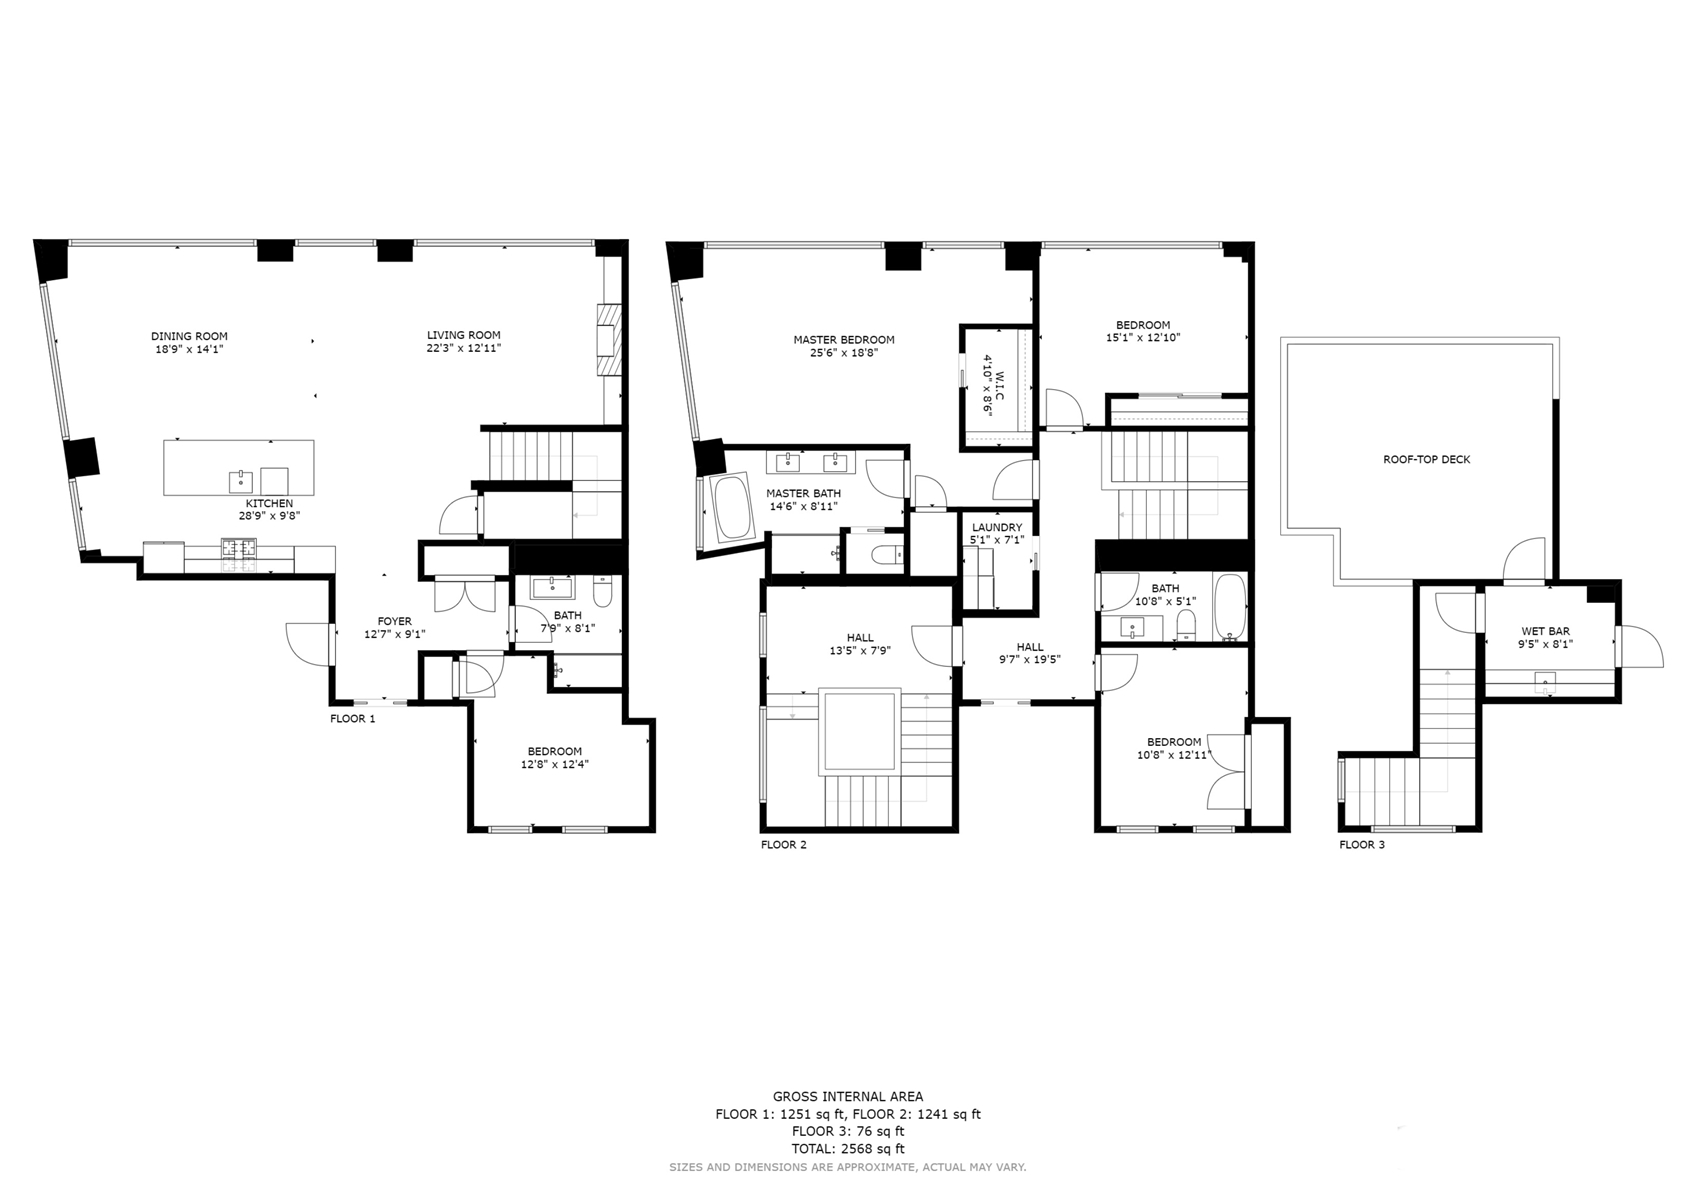 Floor Plan for Luxurious three bedroom and an office on the top 2 floors with private roof deck!